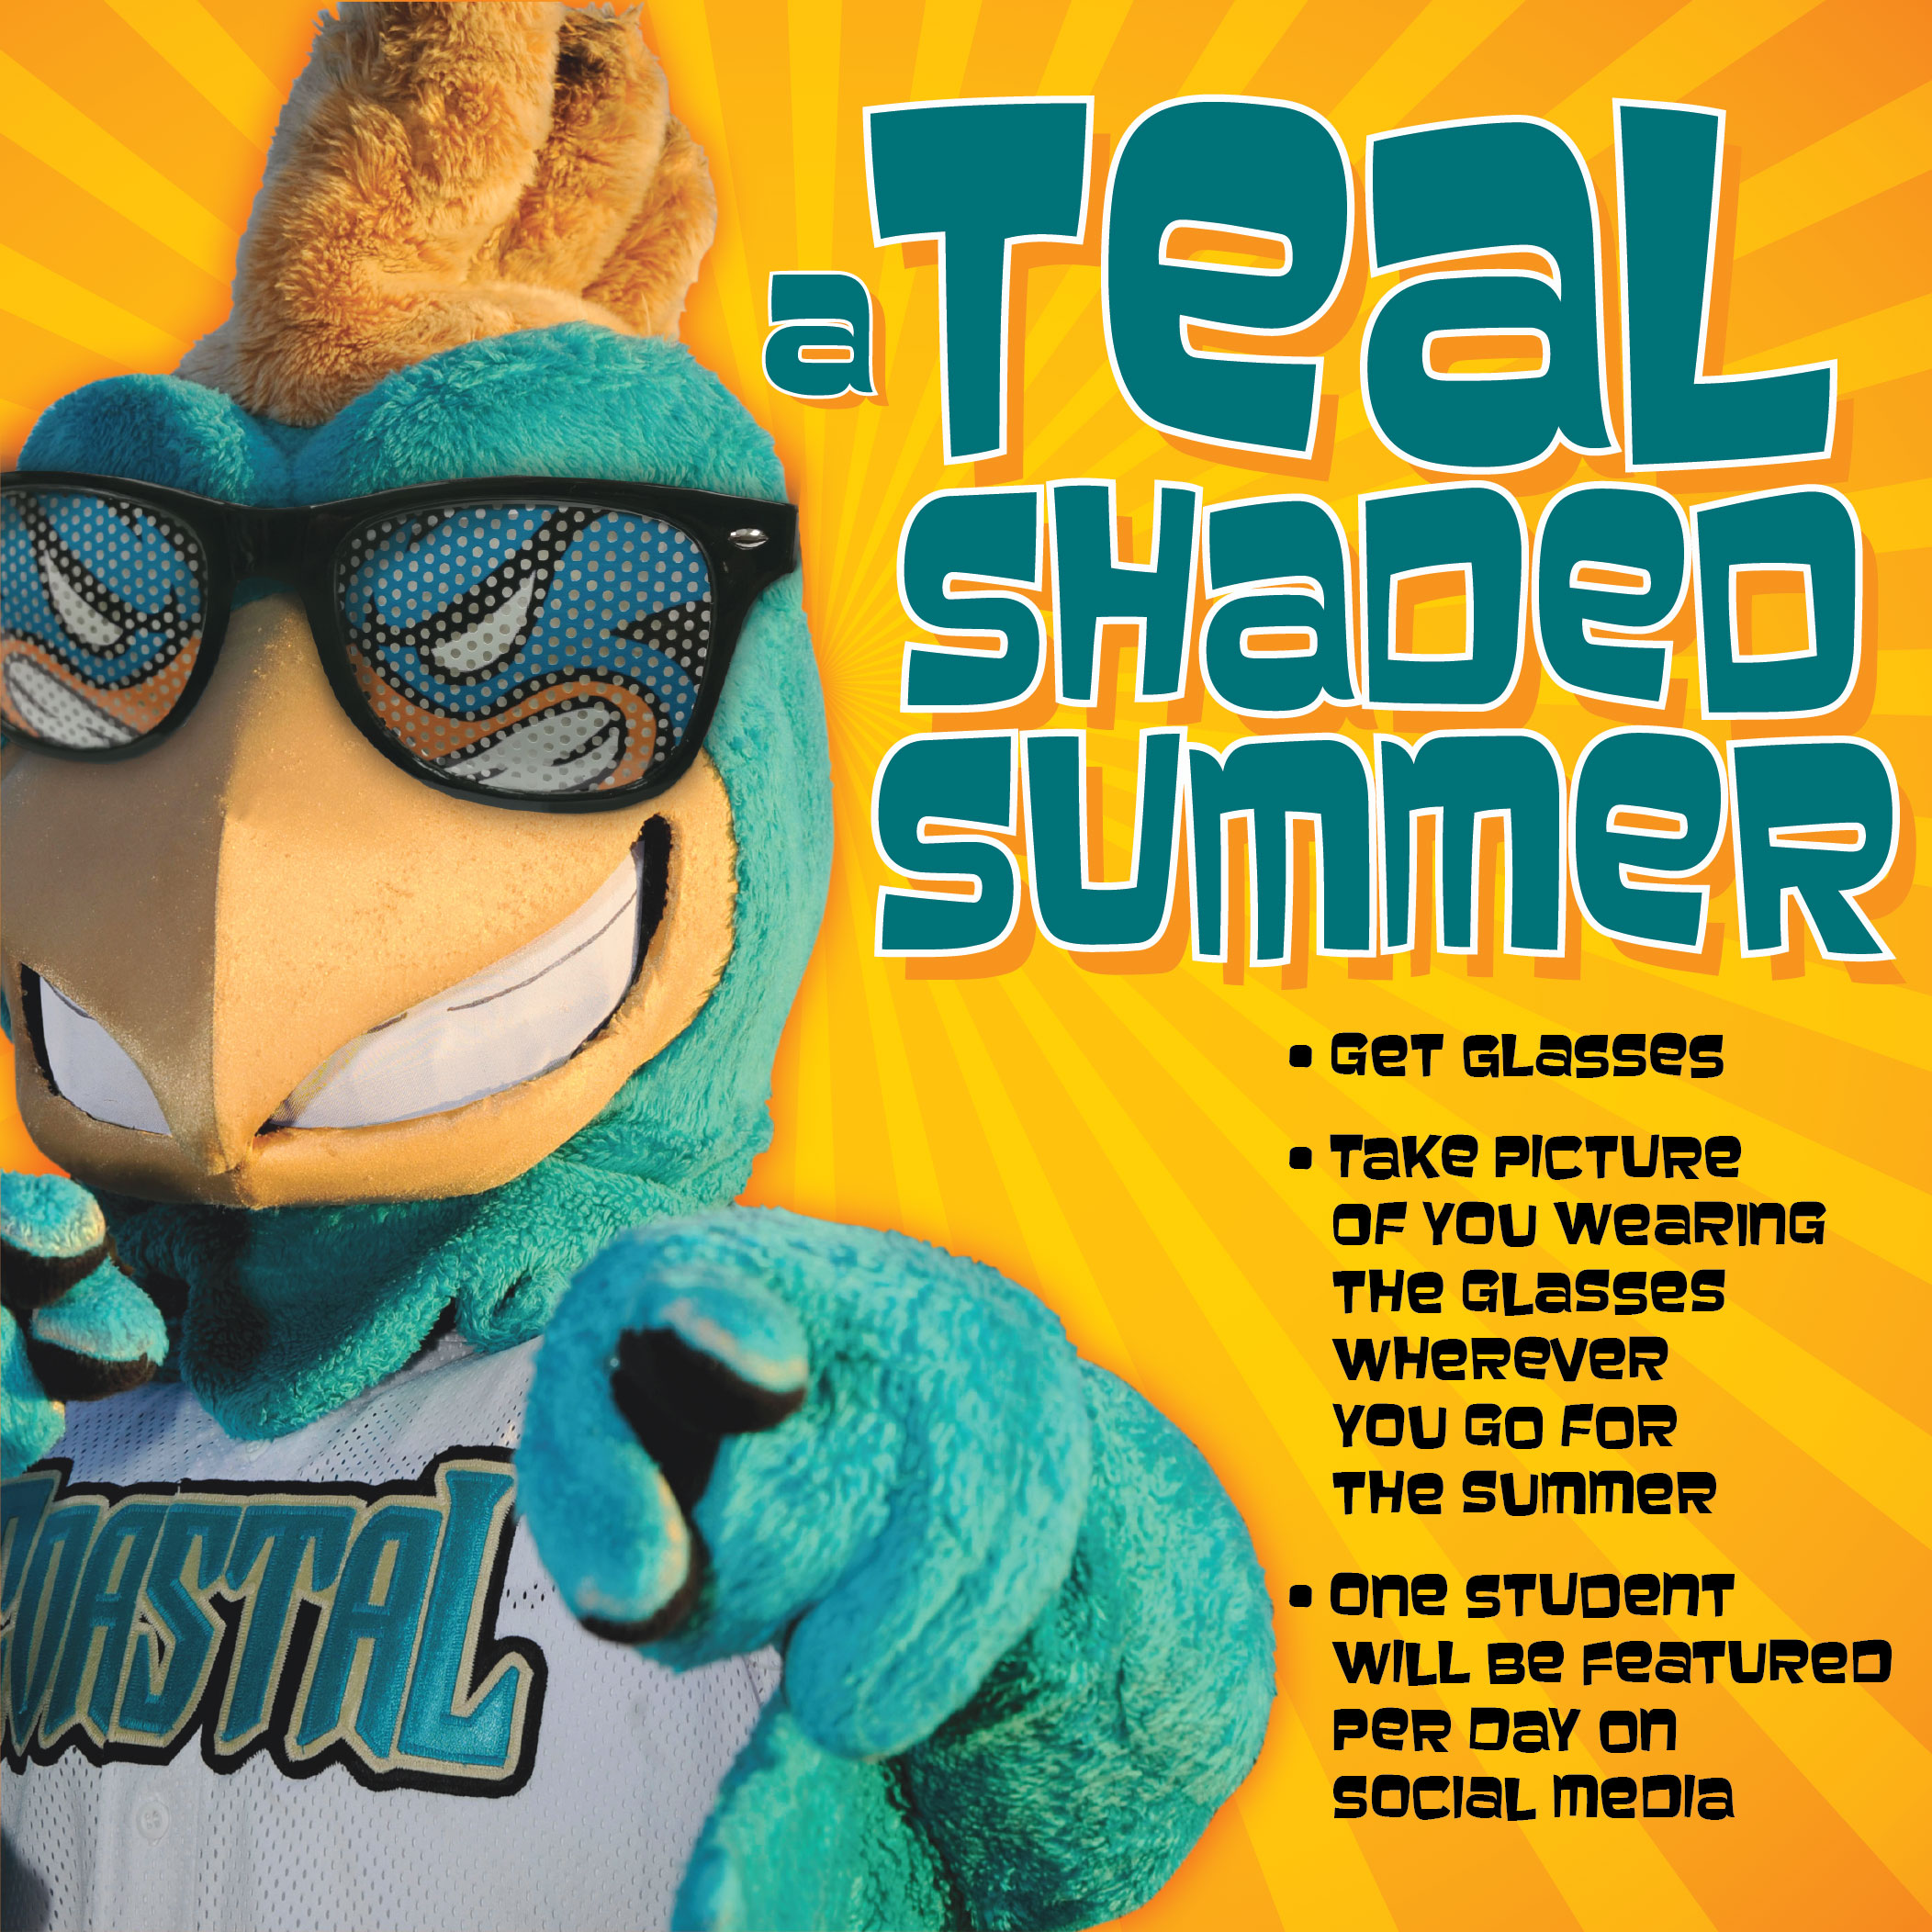 The Teal Shaded Summer will kick off on May 25.